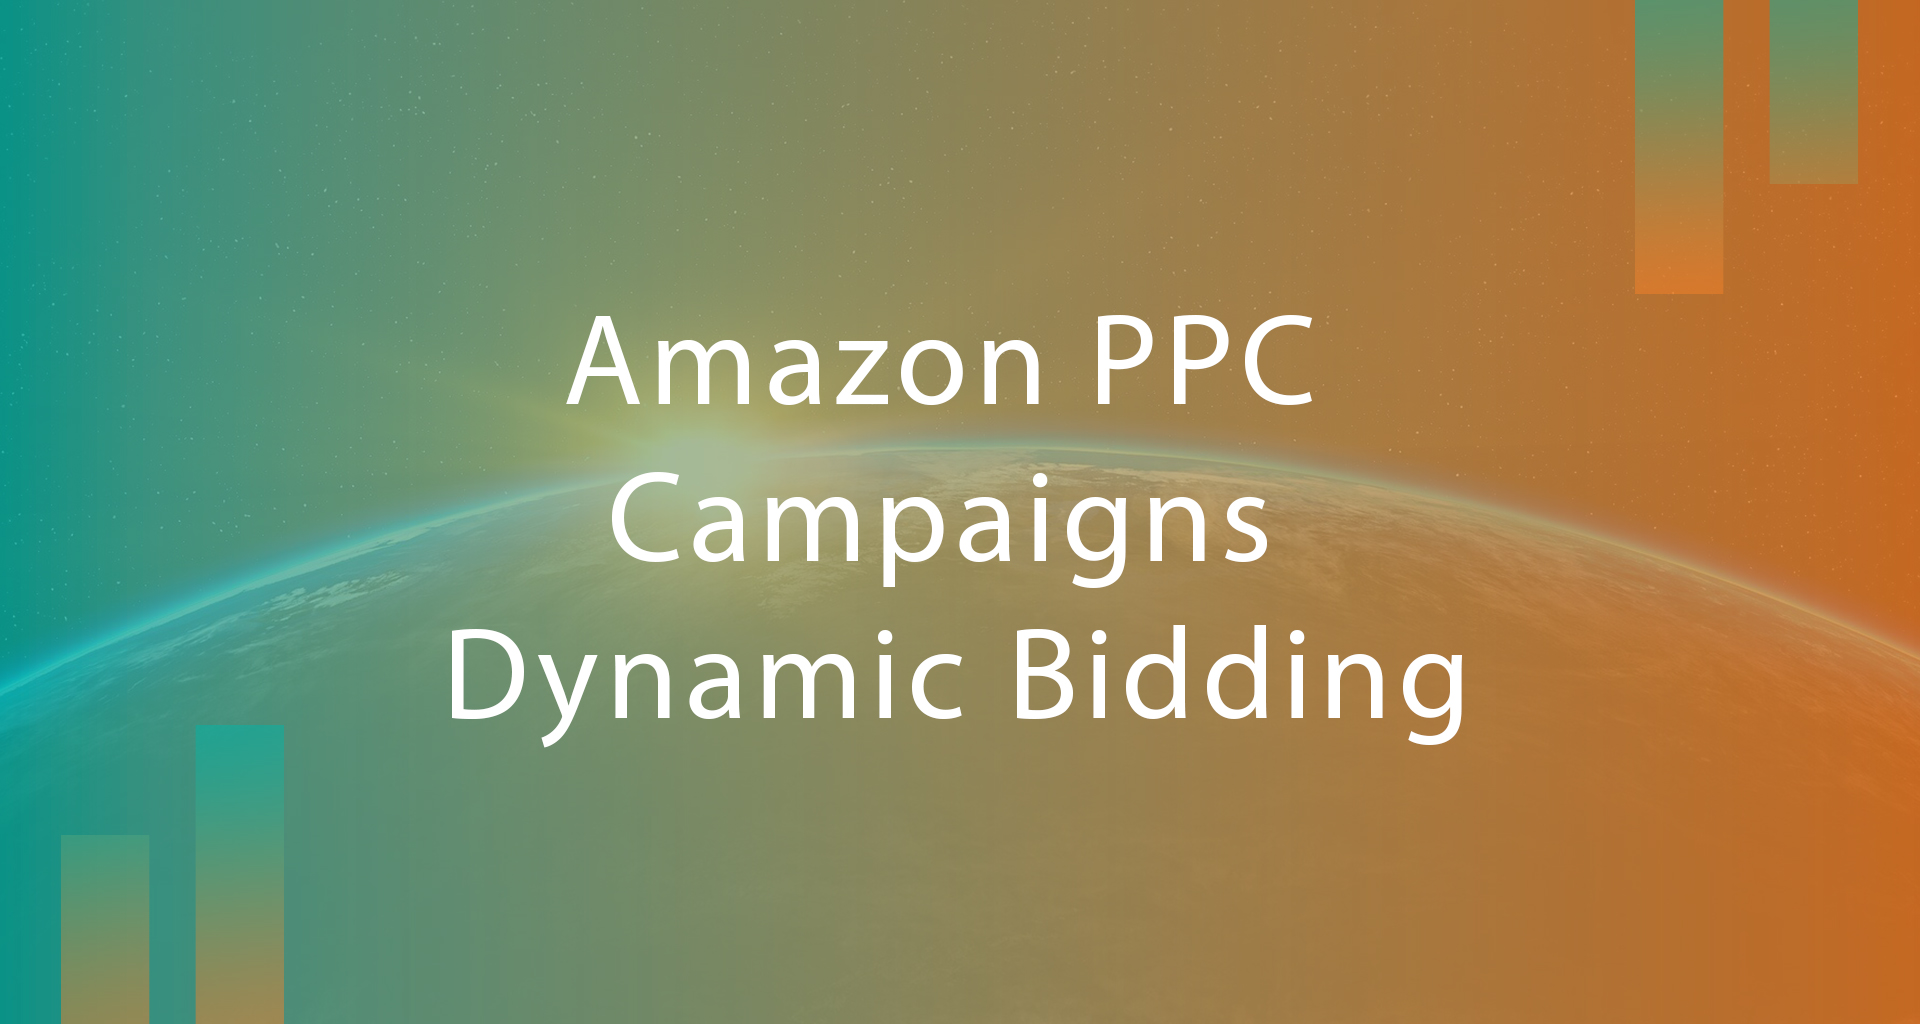 Amazon PPC Campaigns | Dynamic Bidding & Bids Placement – 2020